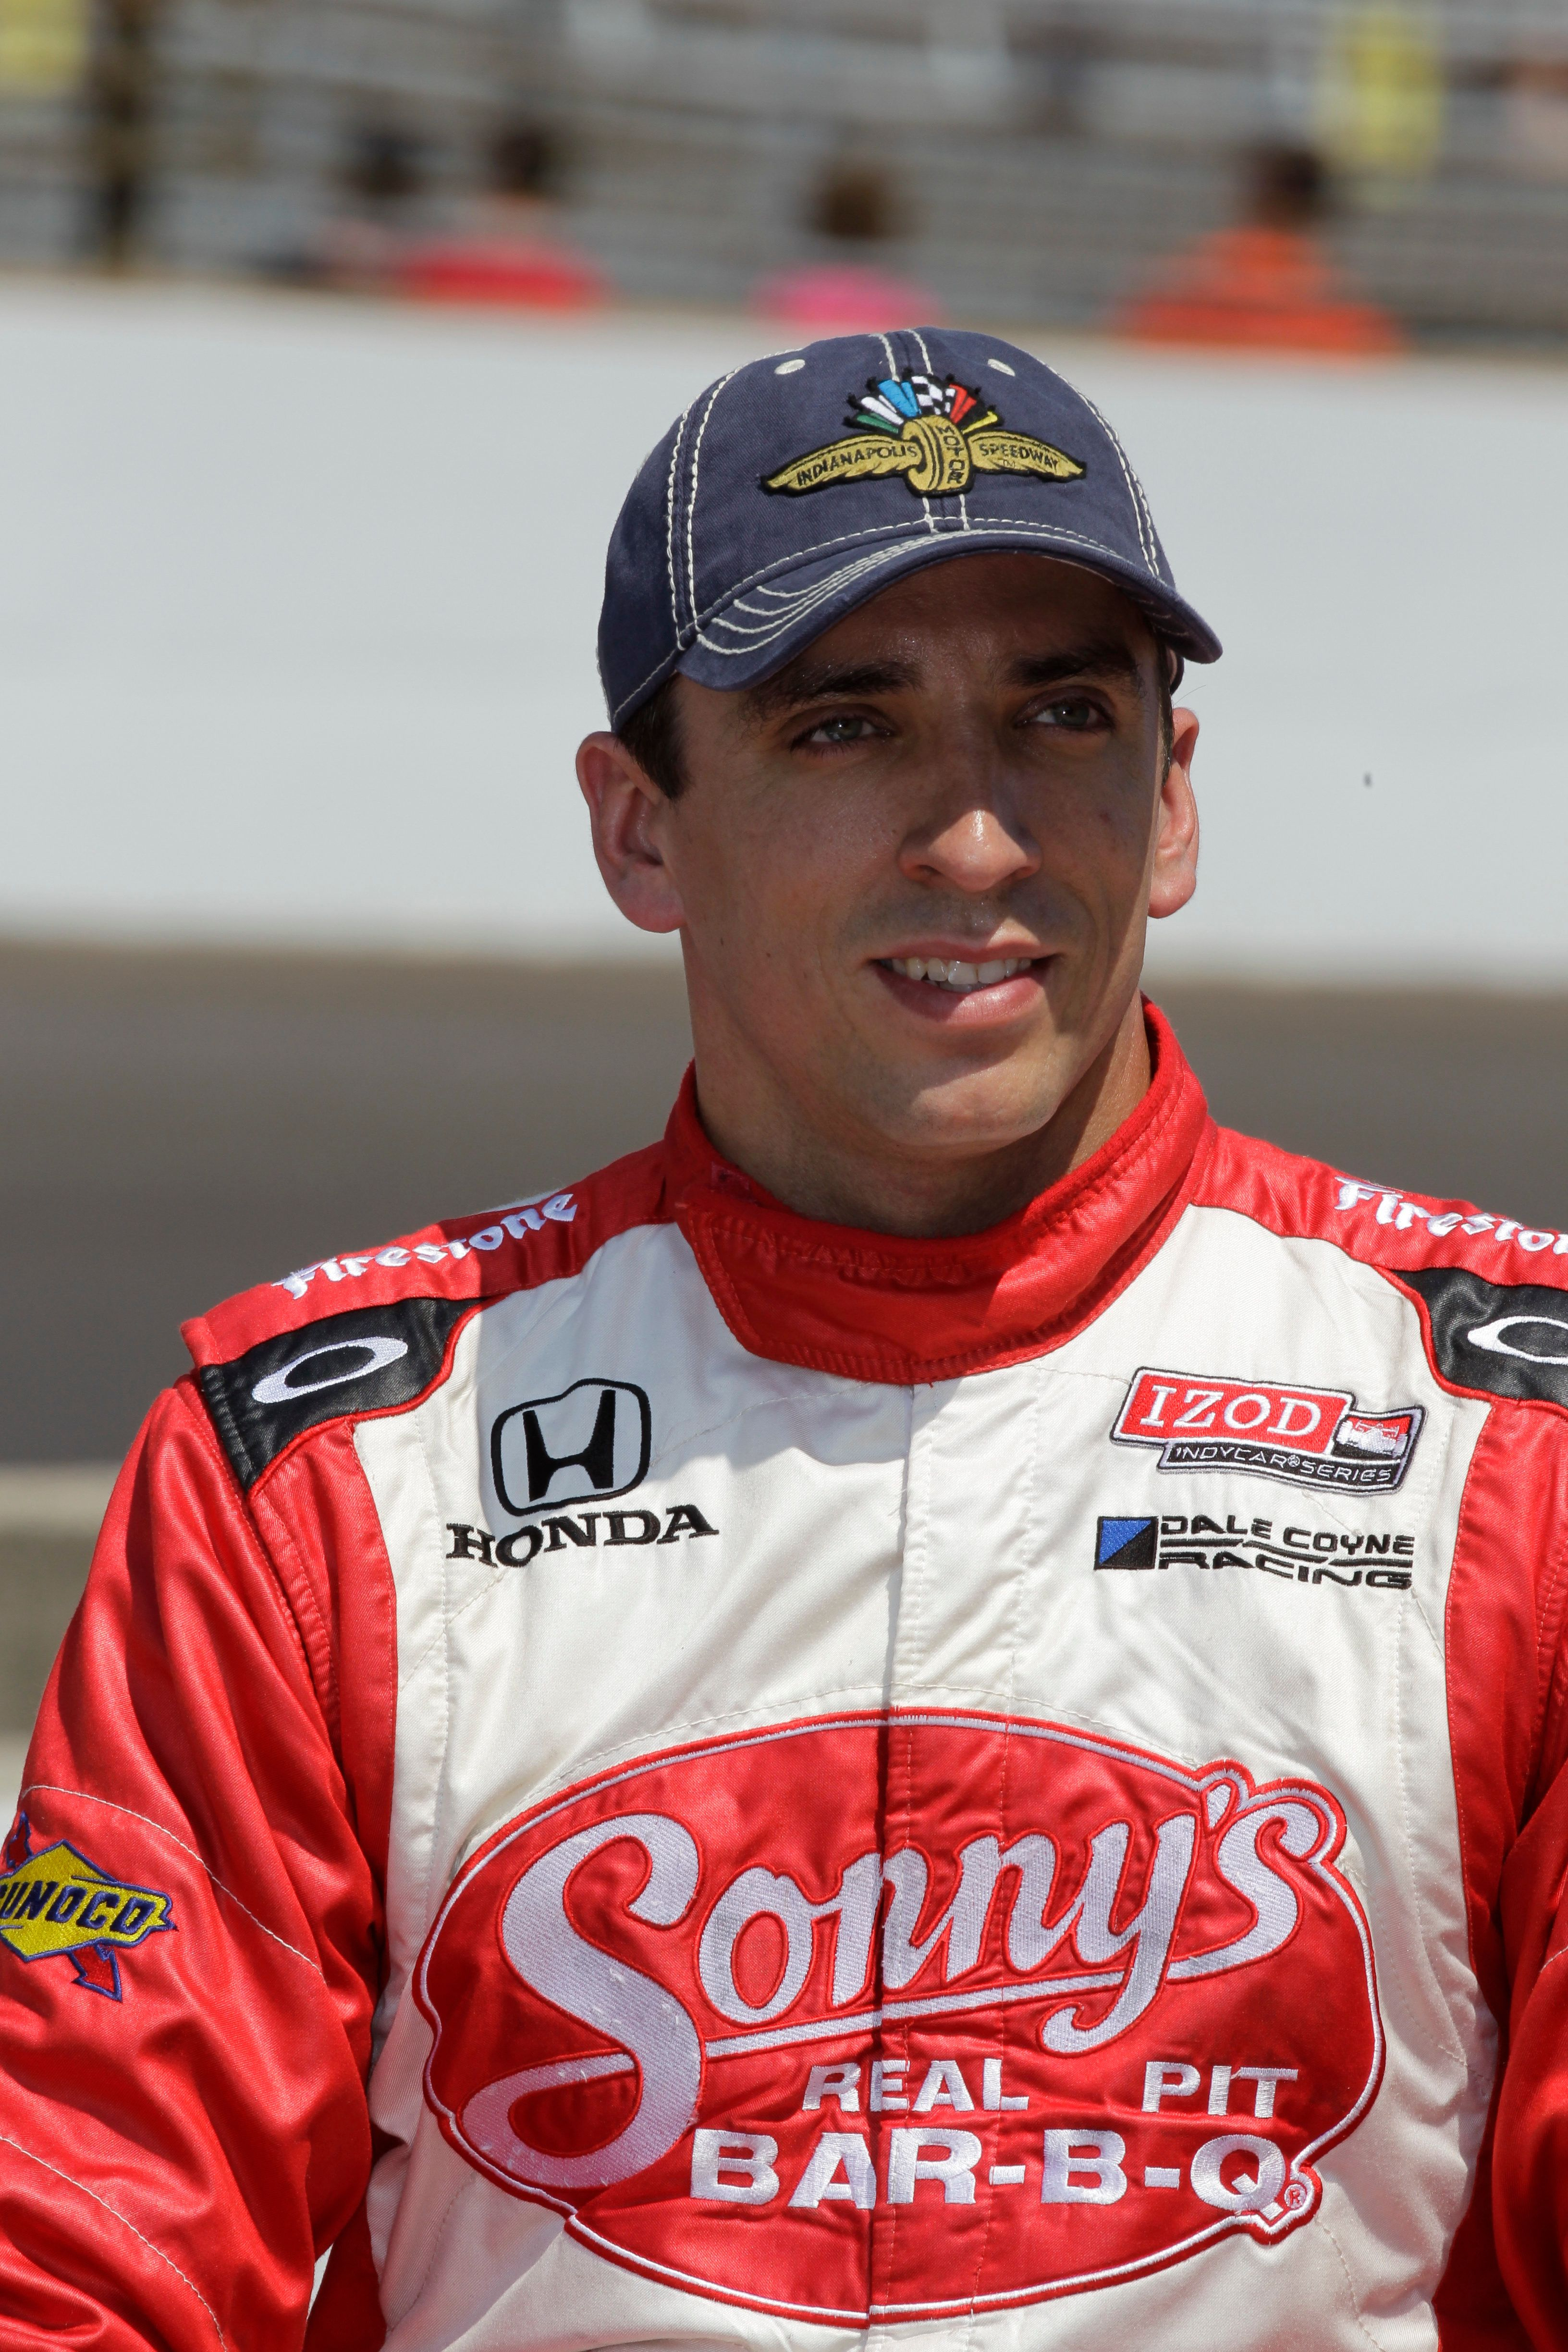 IndyCar driver Justin Wilson, of England, is shown after he qualified for the Indianapolis 500 auto race at the Indianapolis Motor Speedway in Indianapolis, Saturday, May 19, 2012. (AP Photo/Dave Parker)